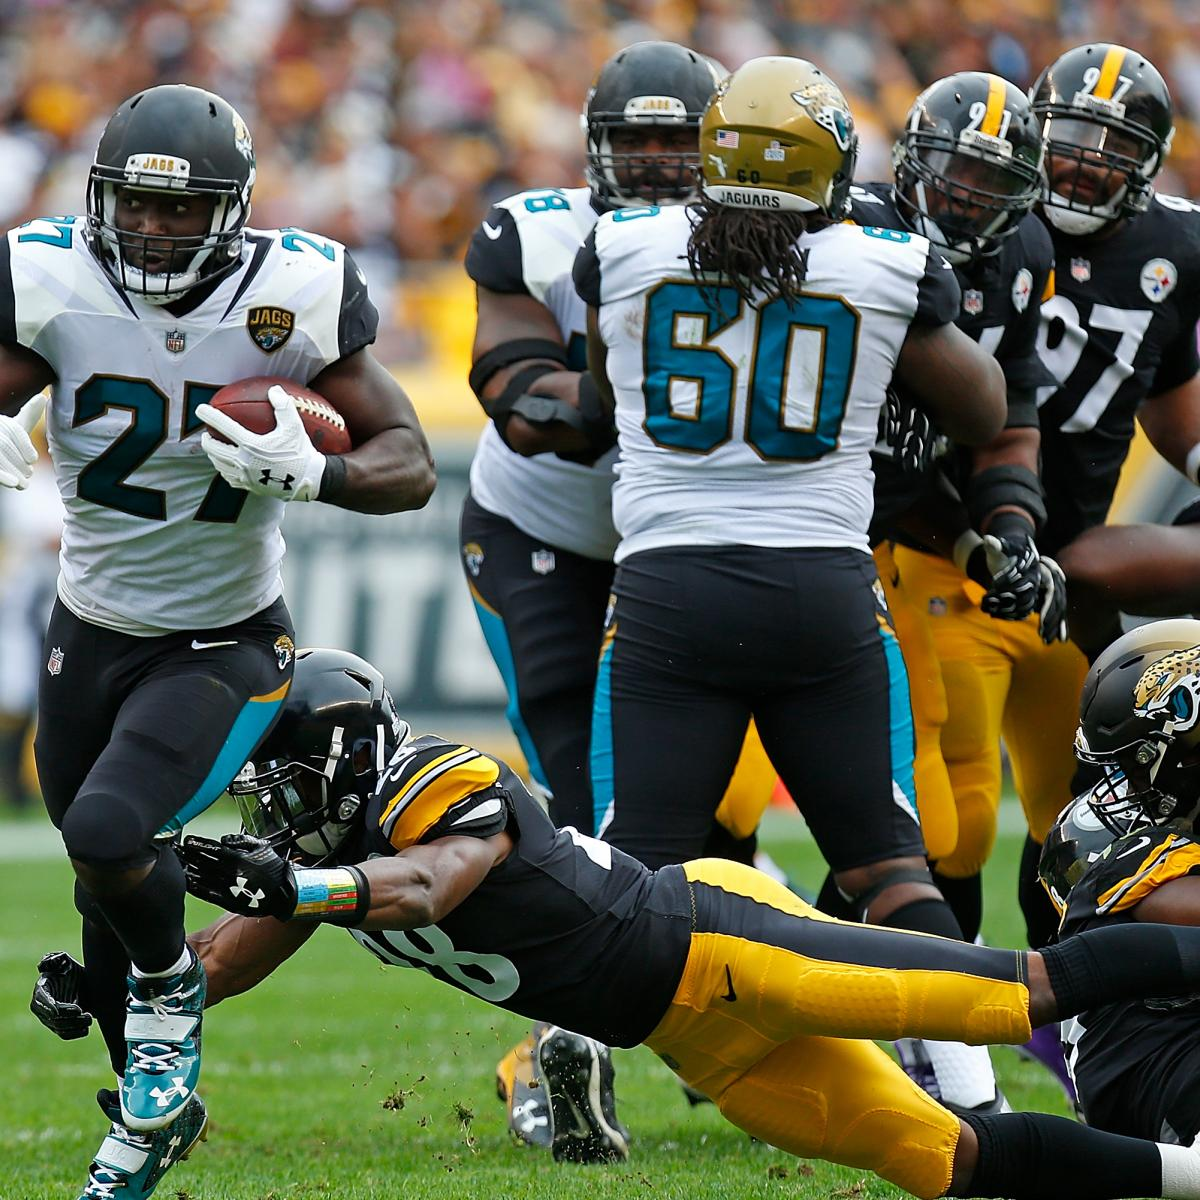 Jaguars vs. Steelers: TV Schedule, Odds, Ticket Info, Game Time and More